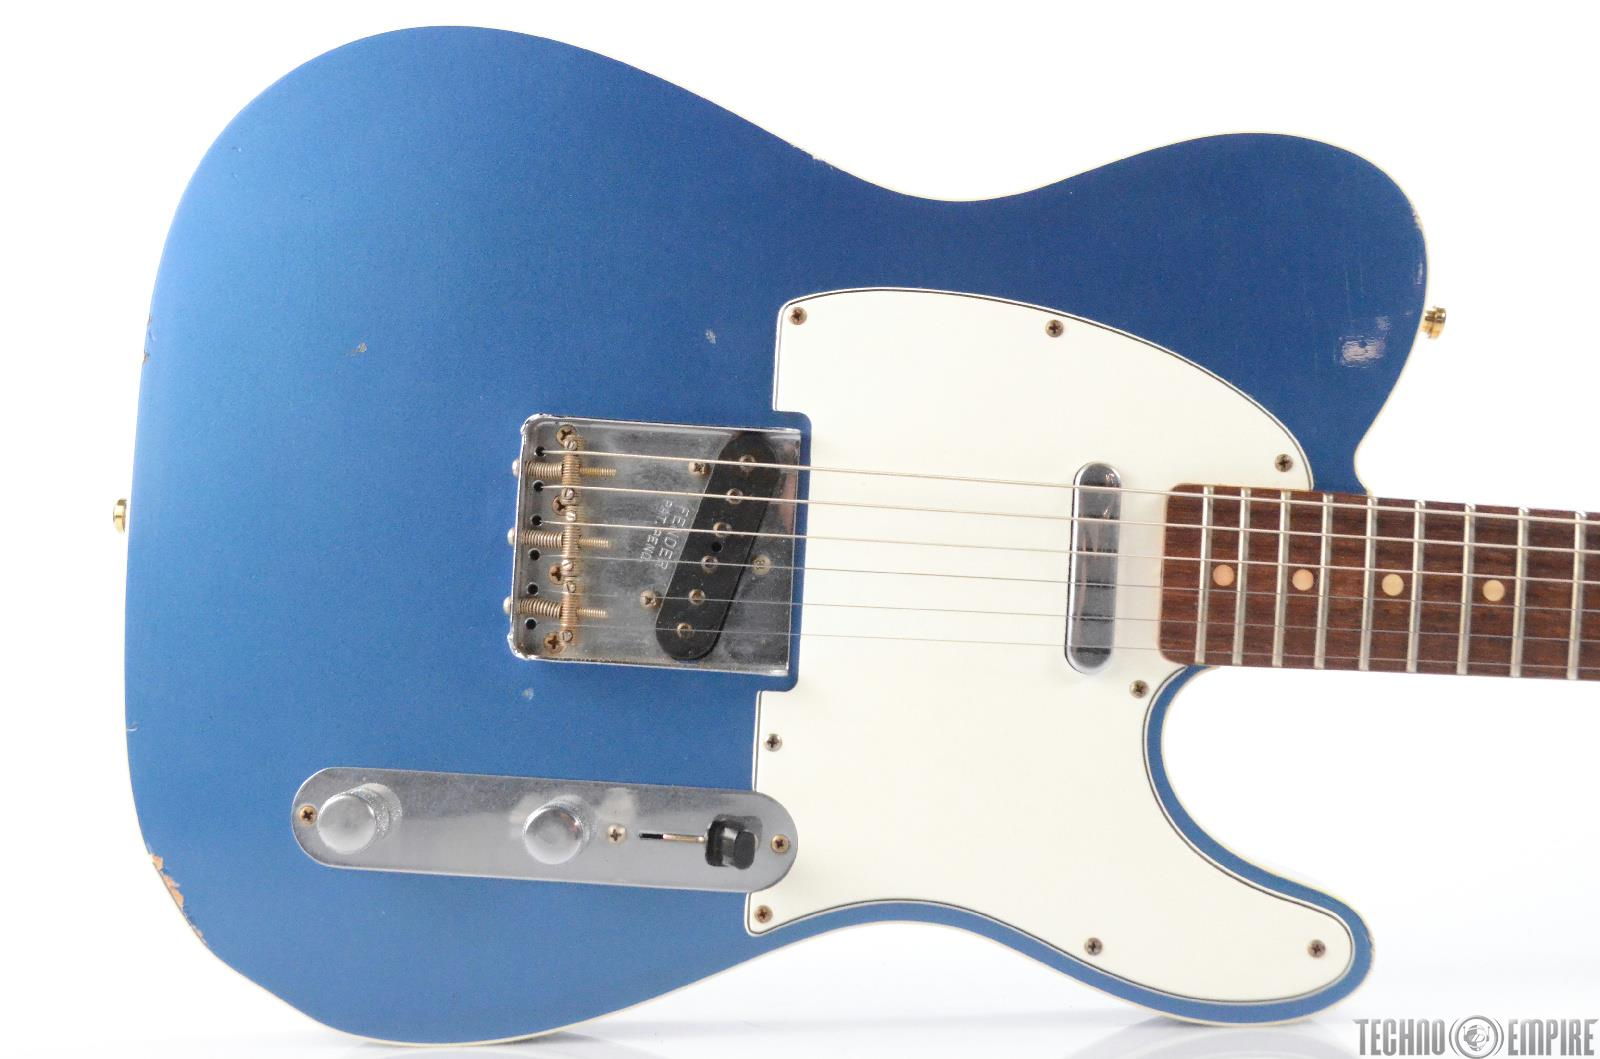 Fender Custom Shop 1960 Relic Telecaster Lake Placid Blue Guitar w/ Case #30251